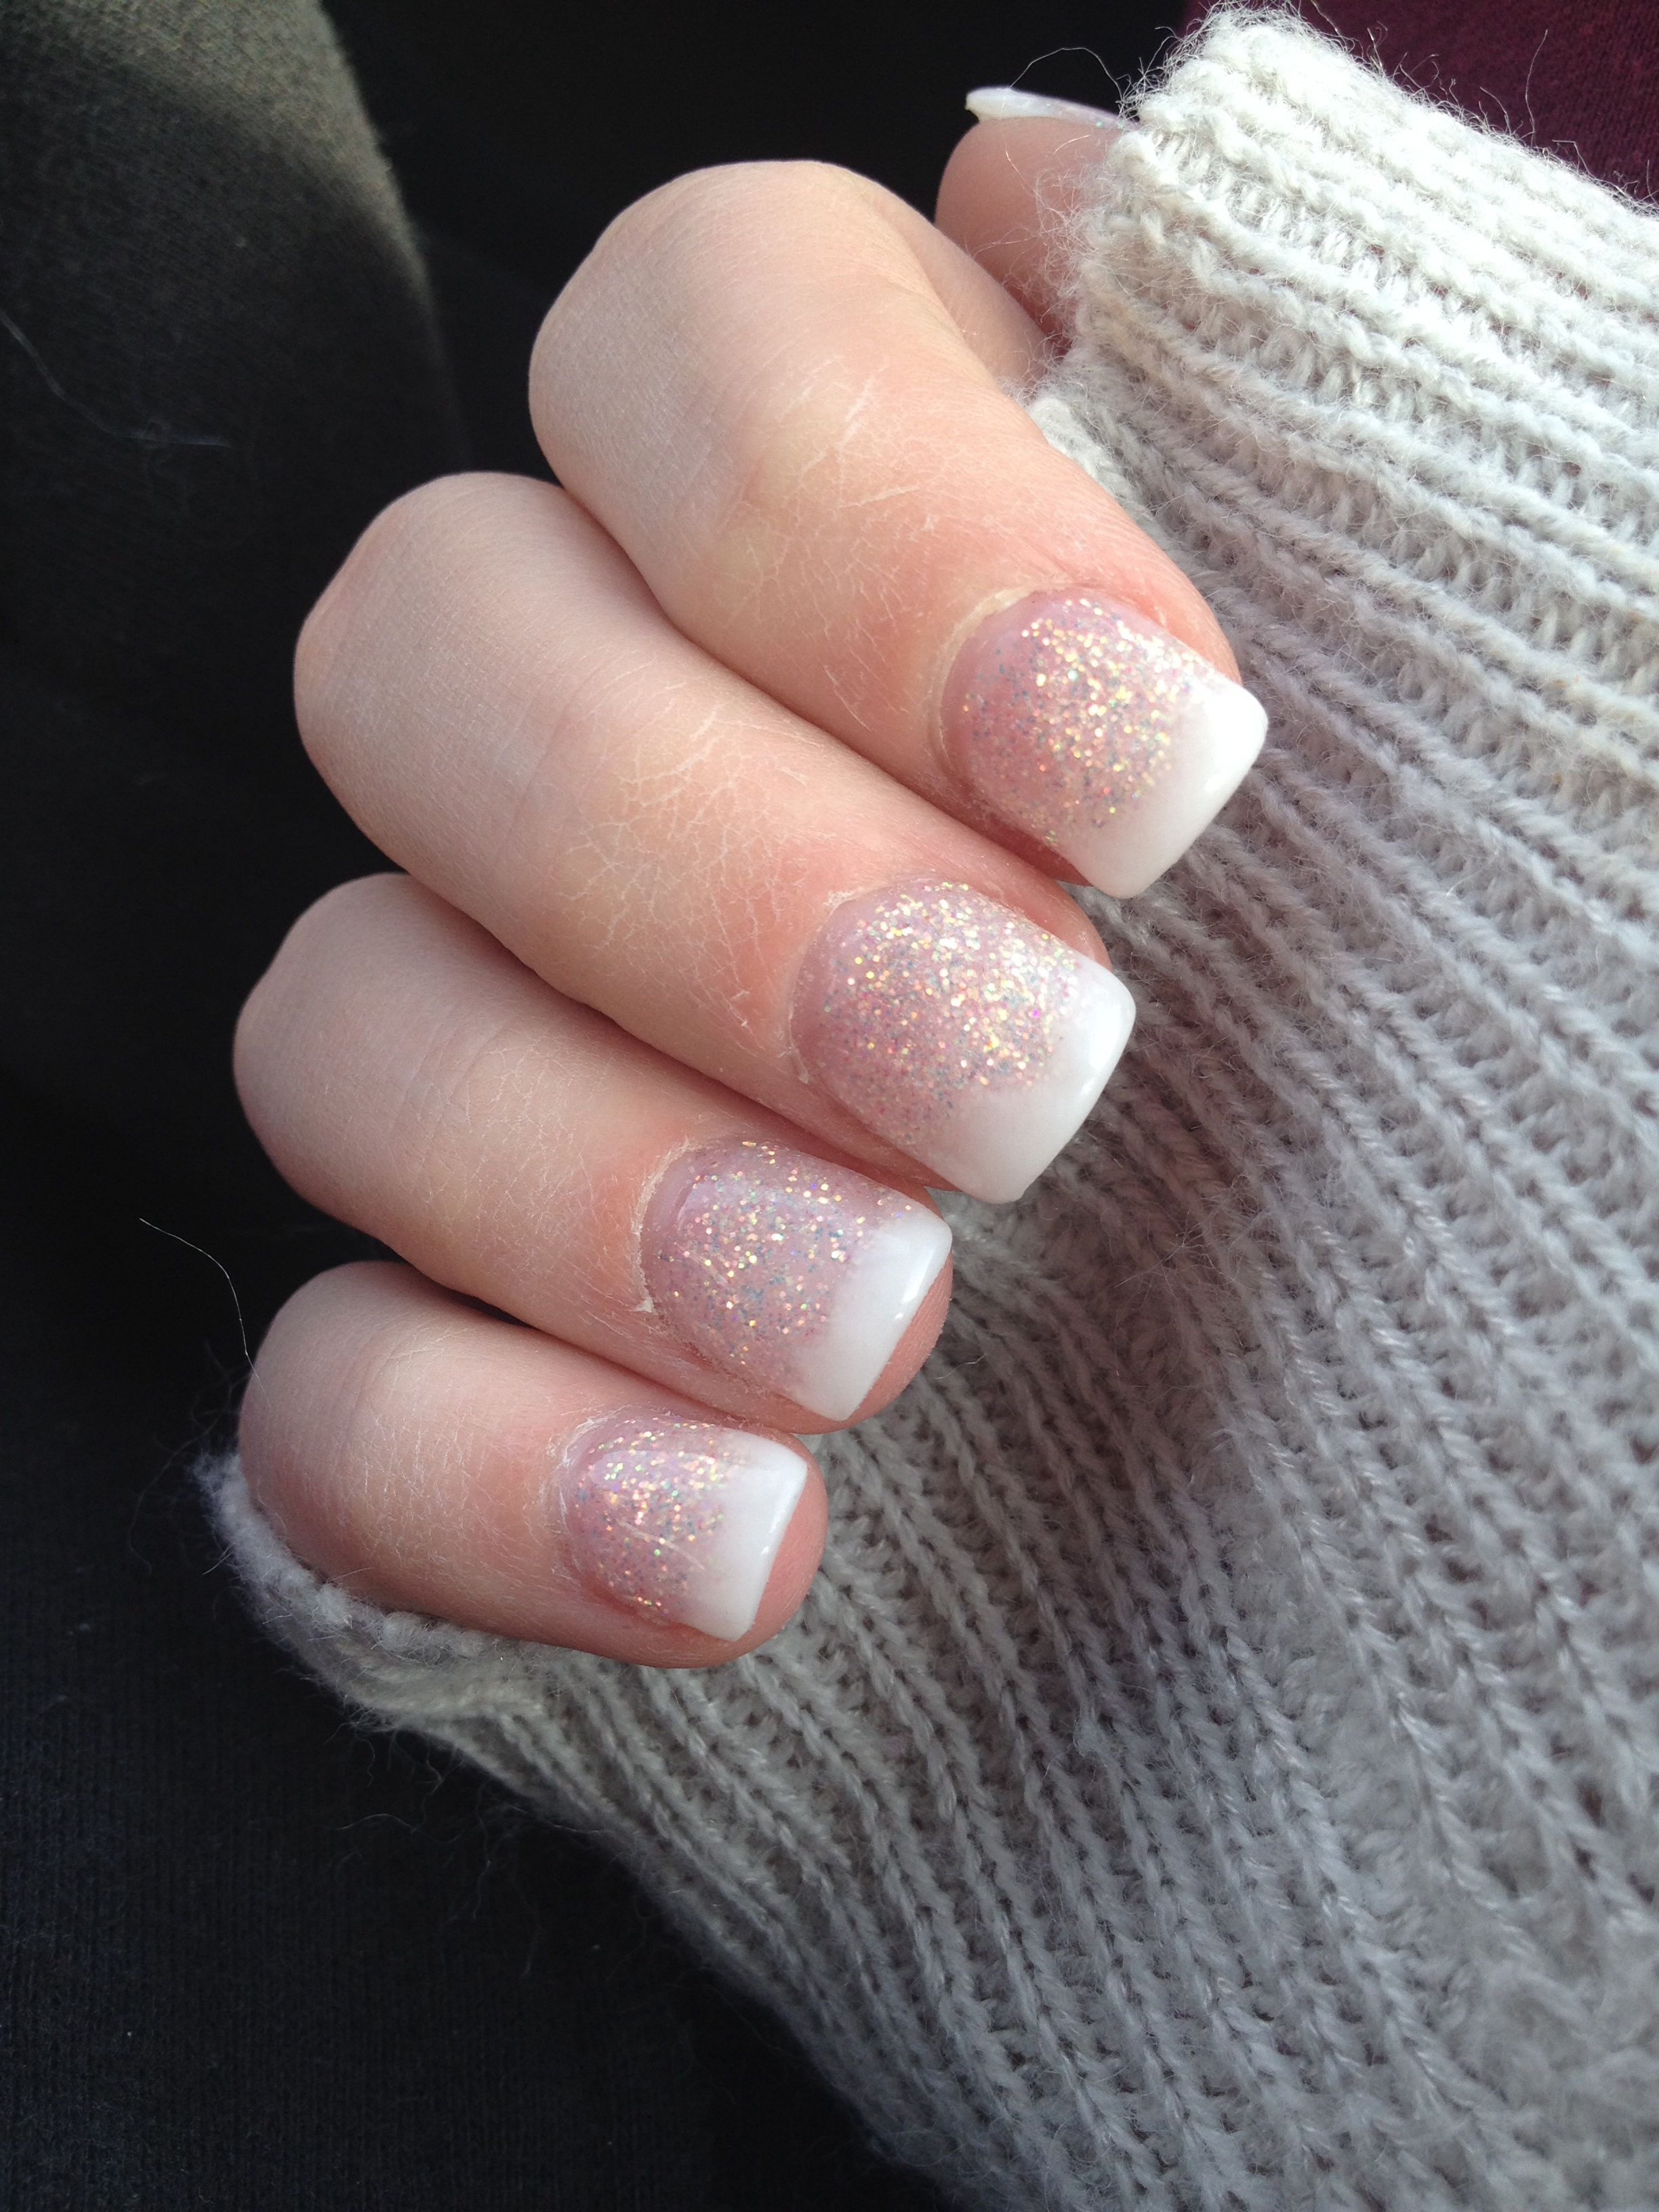 Antique White Sparkles W Natural White Tip Gel Nails Gel Nails Nails Pretty Nails Classy